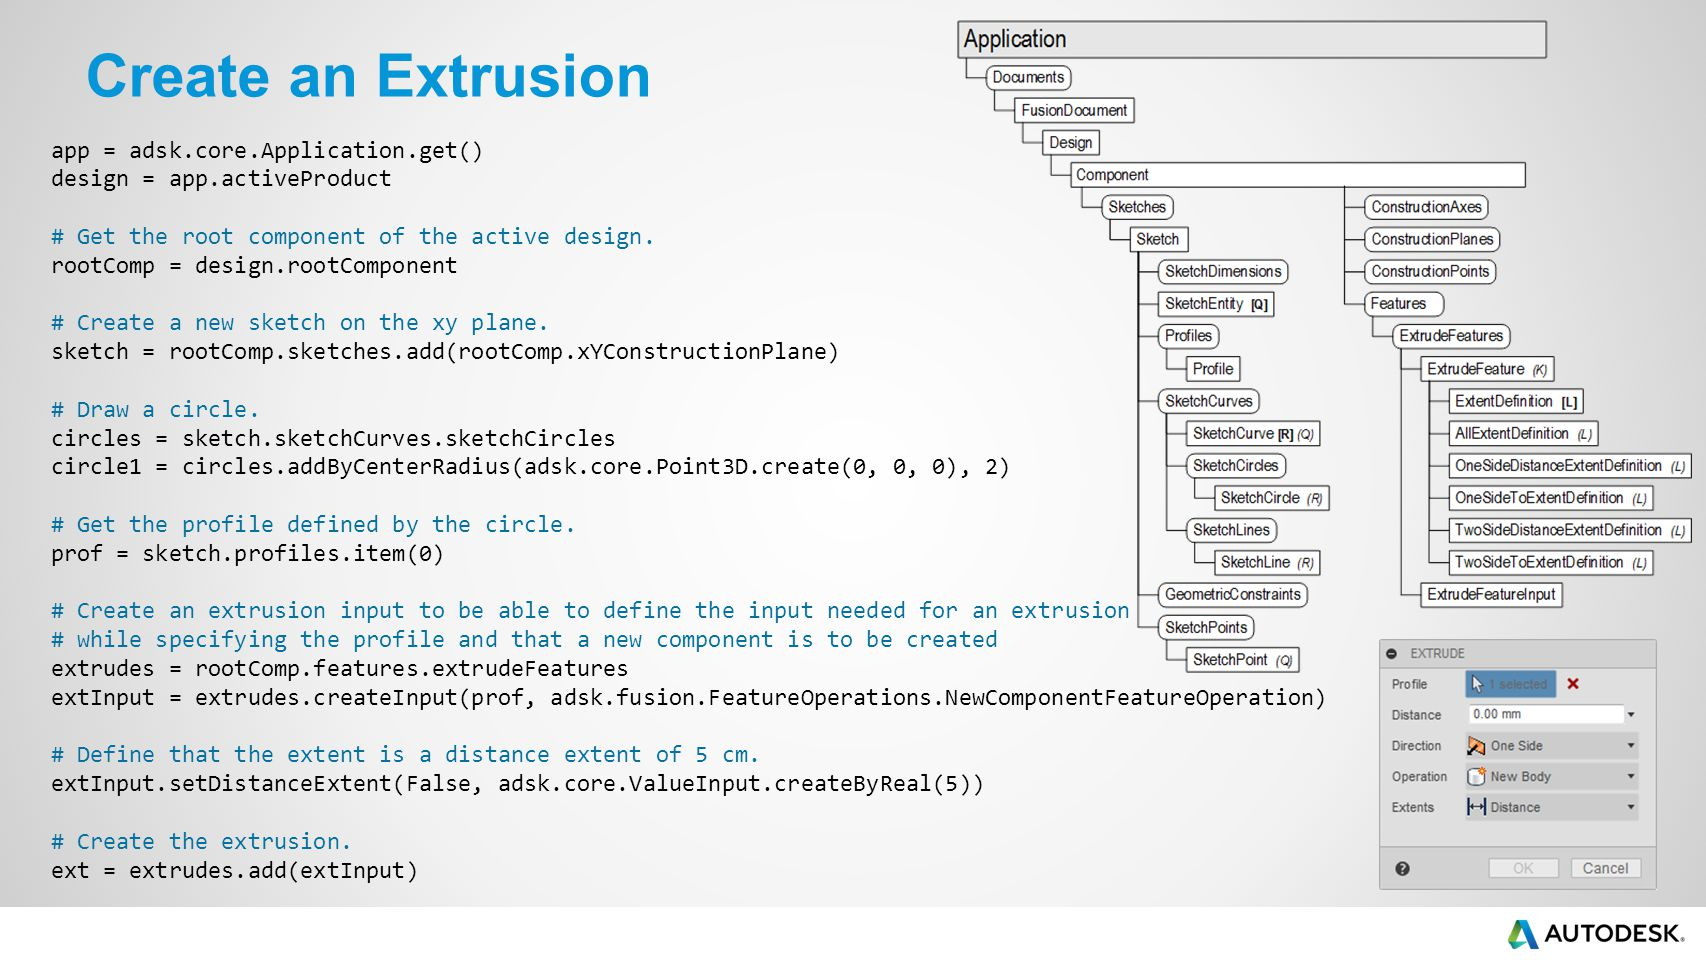 Create an Extrusion app = adsk.core.Application.get()